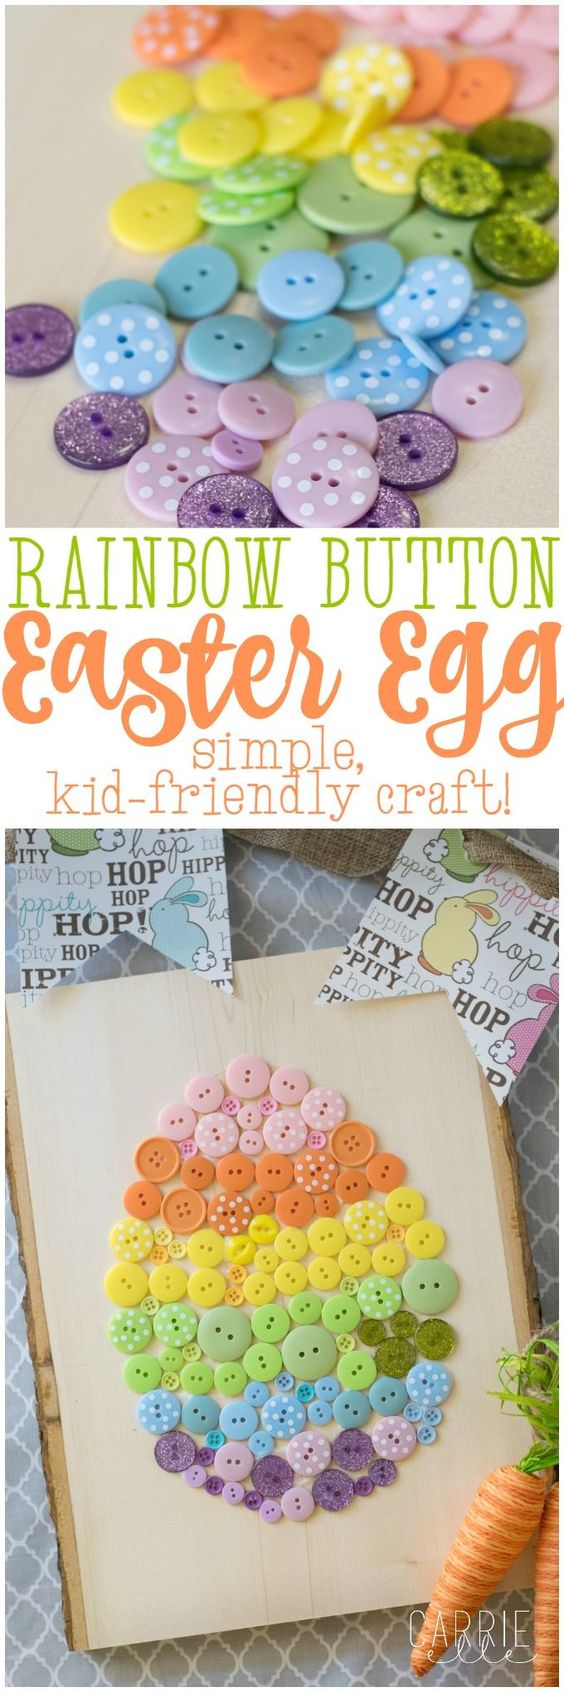 Easy Easter Craft:  This Button Easter Egg is super simple to make and looks ADORABLE...perfect for Easter and spring decorating!: